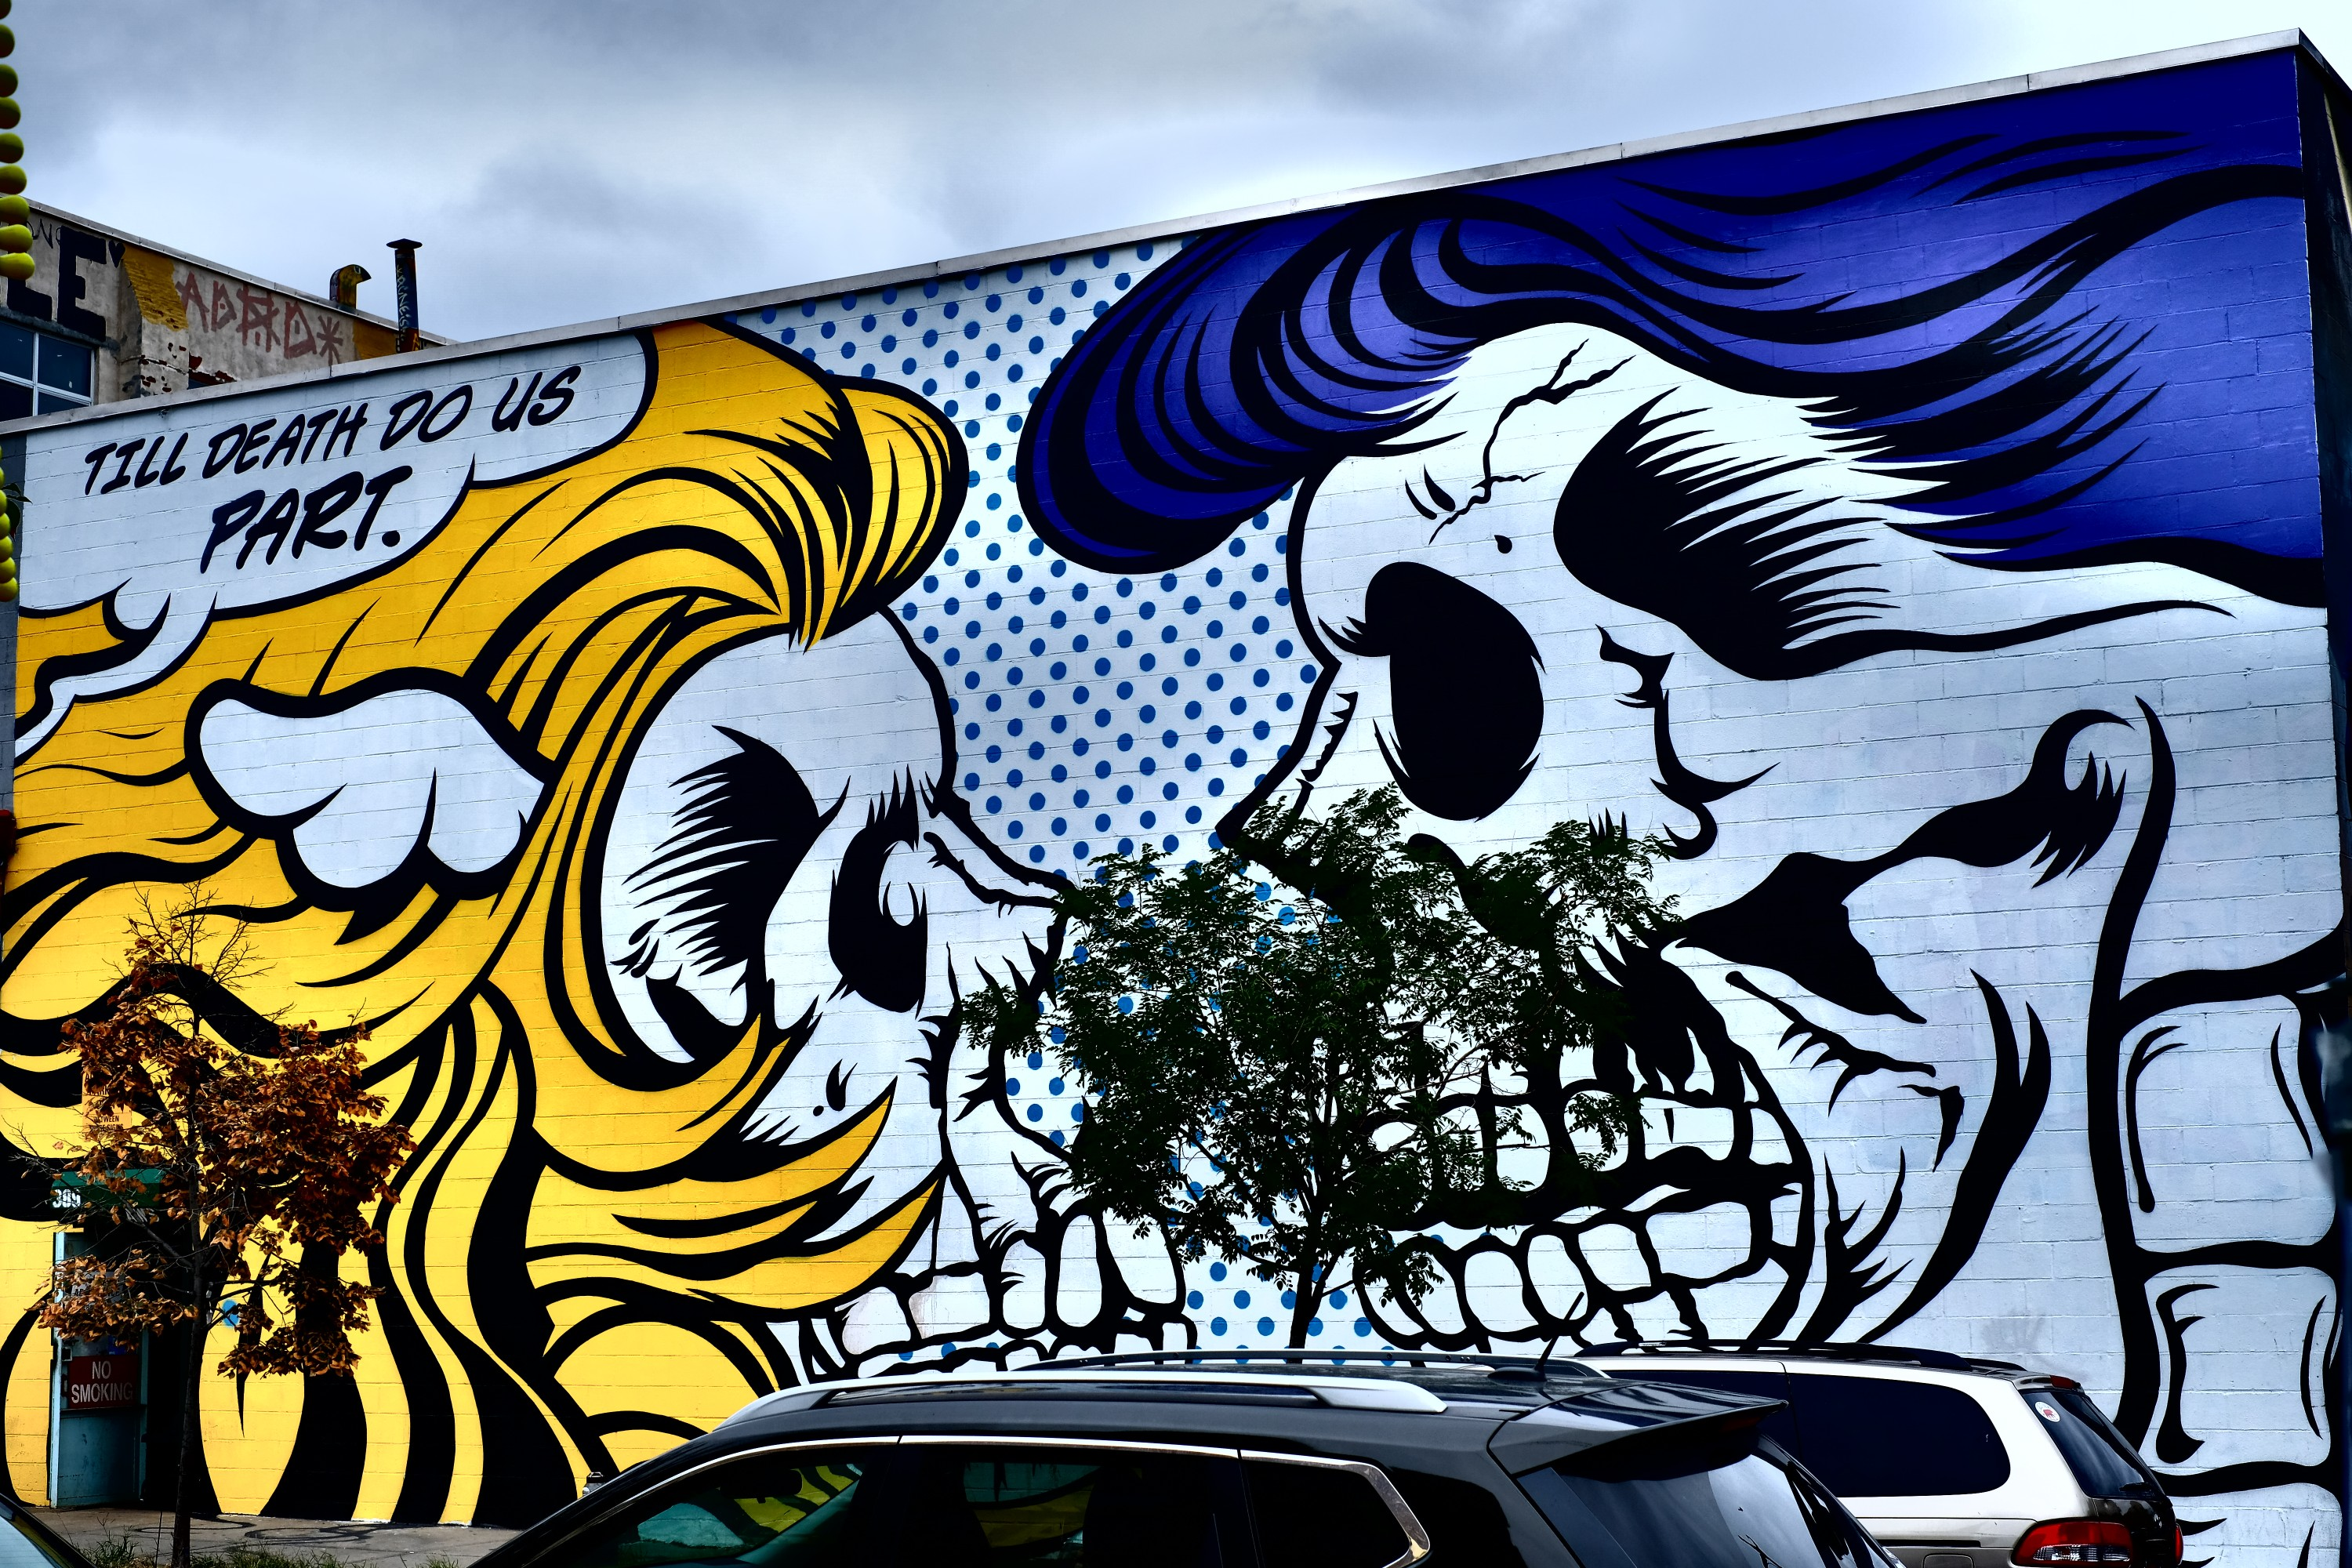 street art of two skulls facing each other